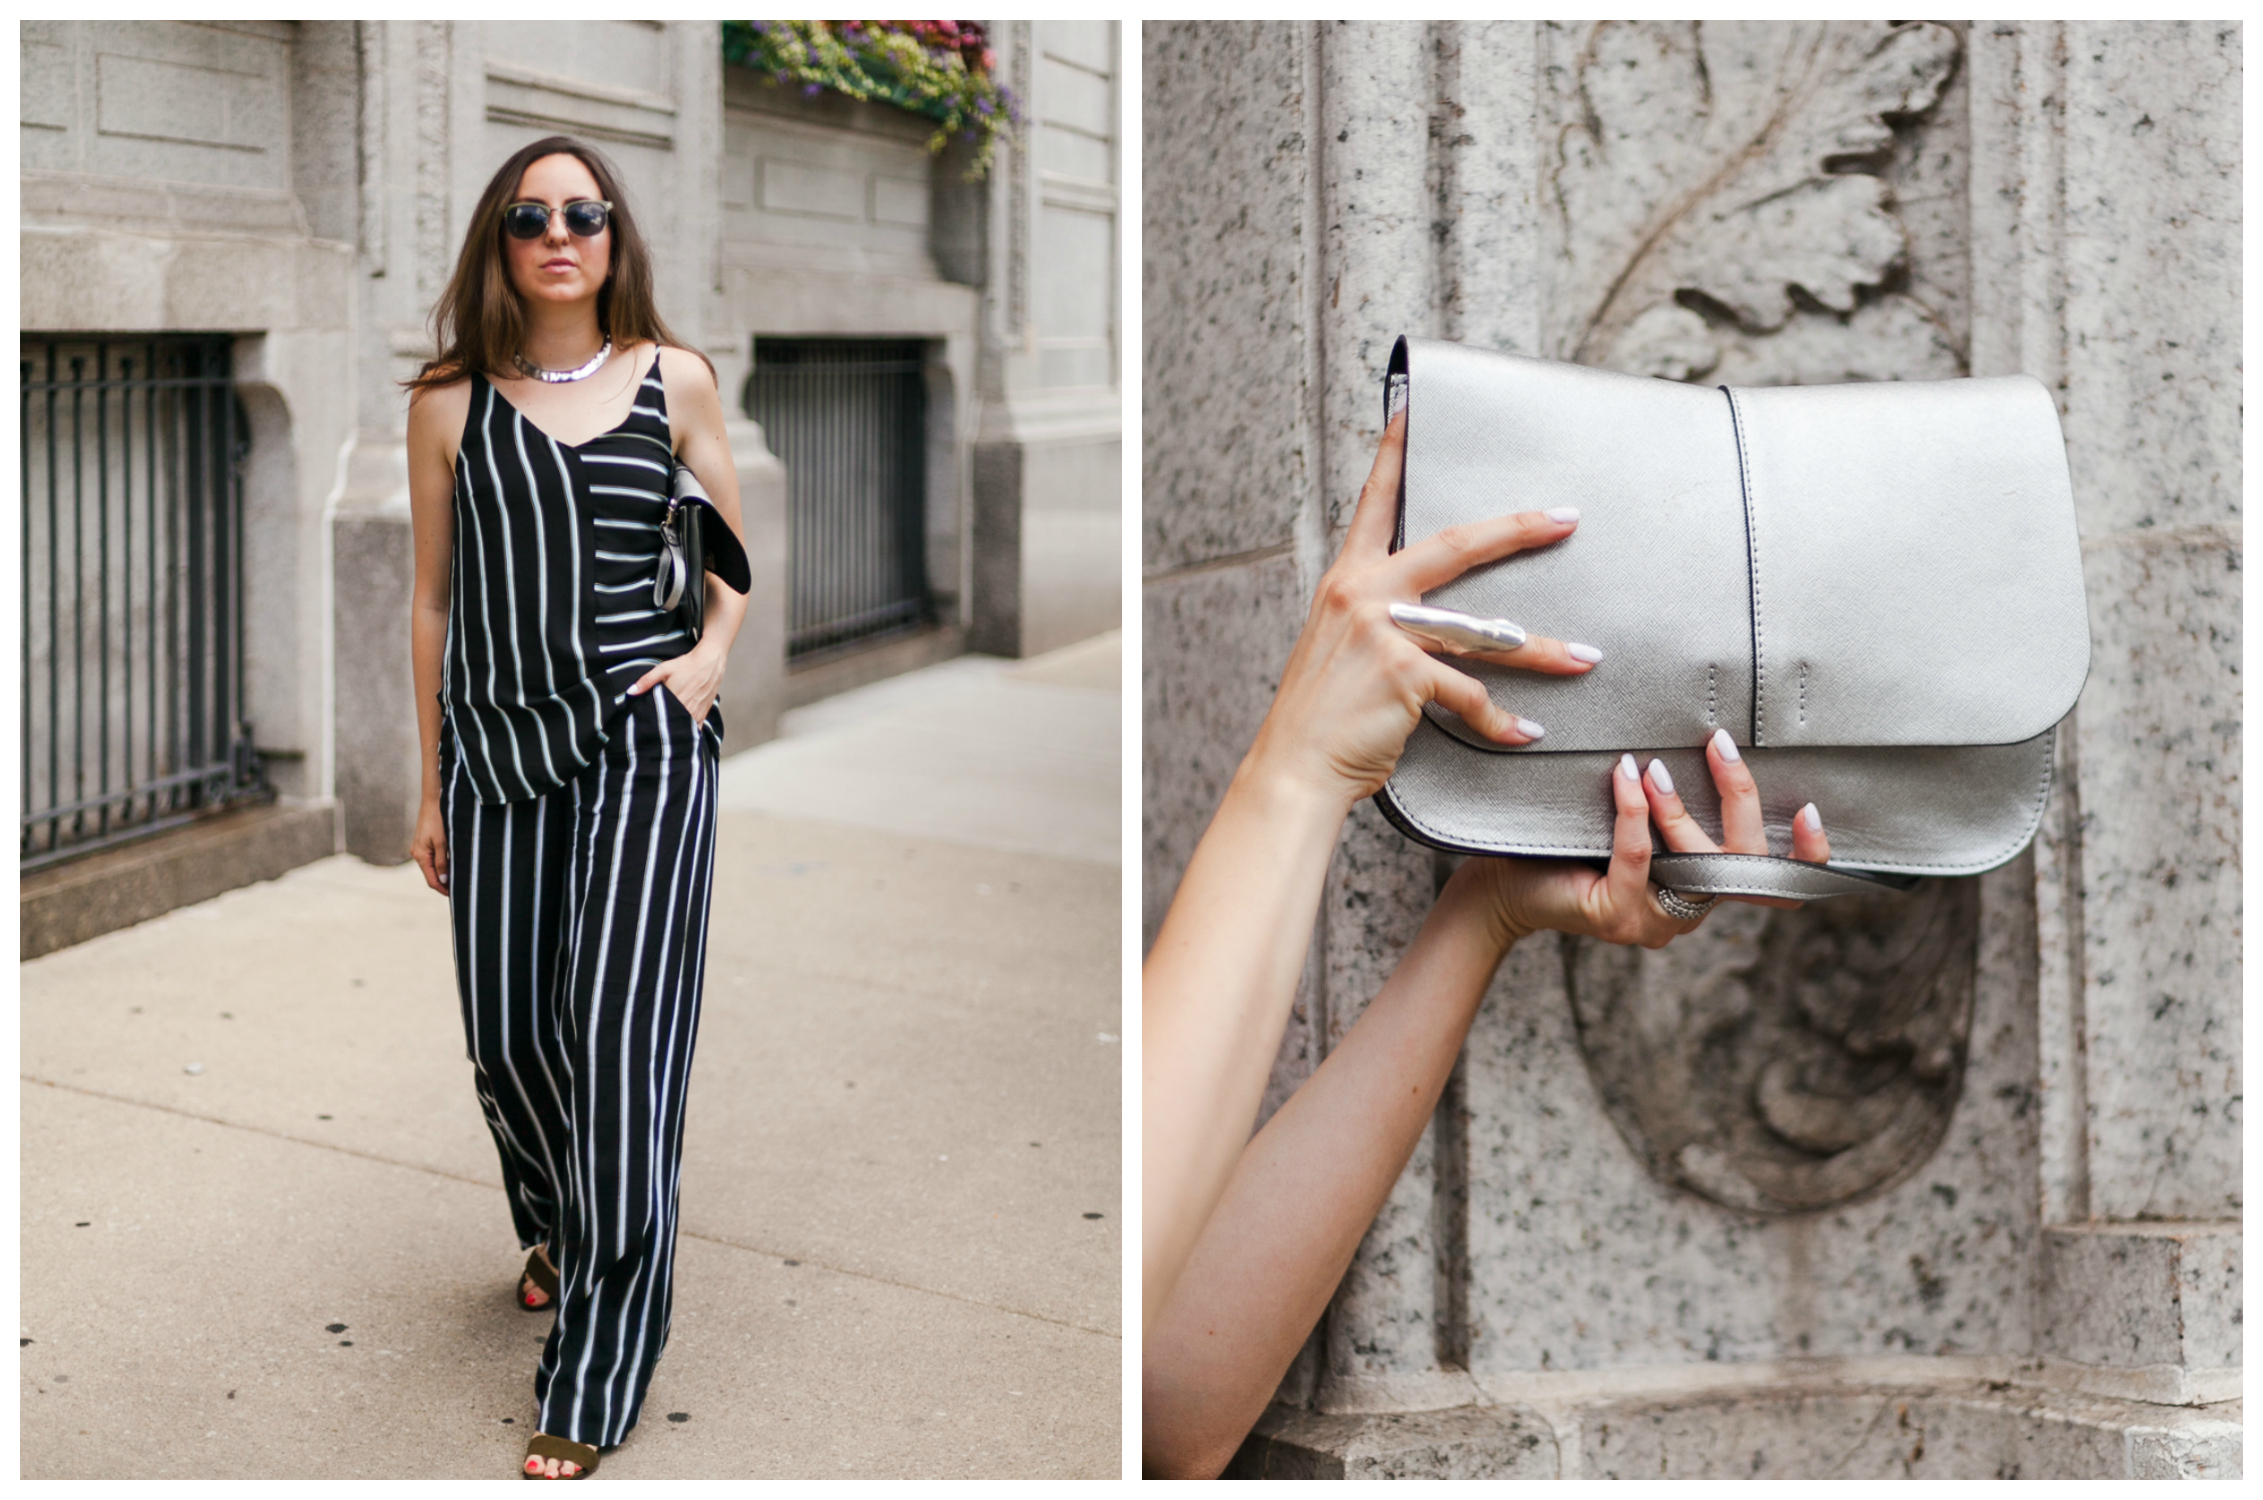 Yana Frigelis of NoMad Luxuries wearing a striped coord set transitioning into fall wardrobe